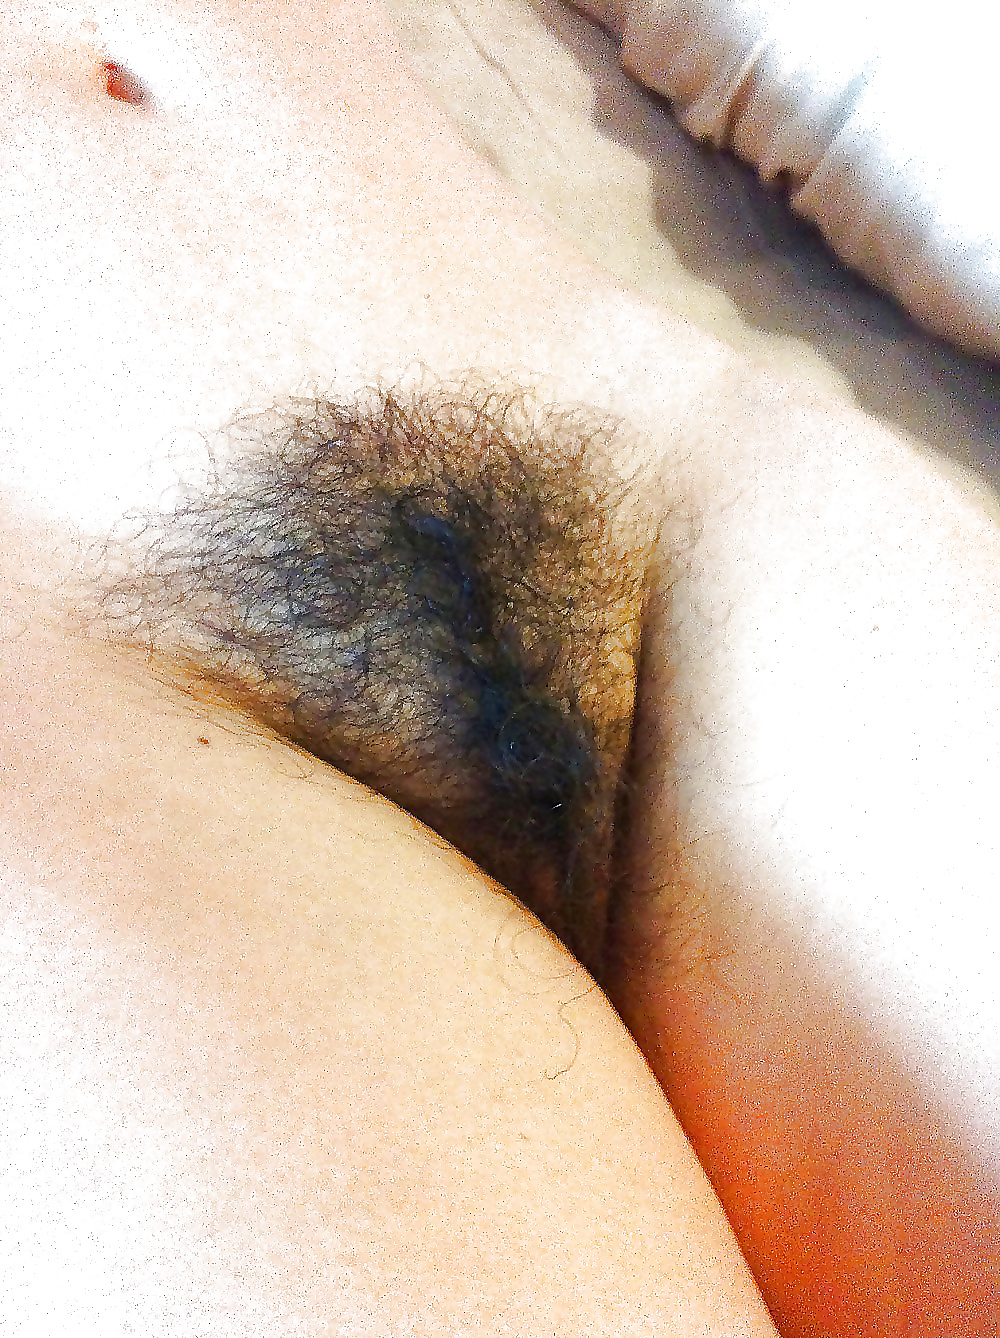 alman-girls-alot-of-hair-on-pussy-area-booty